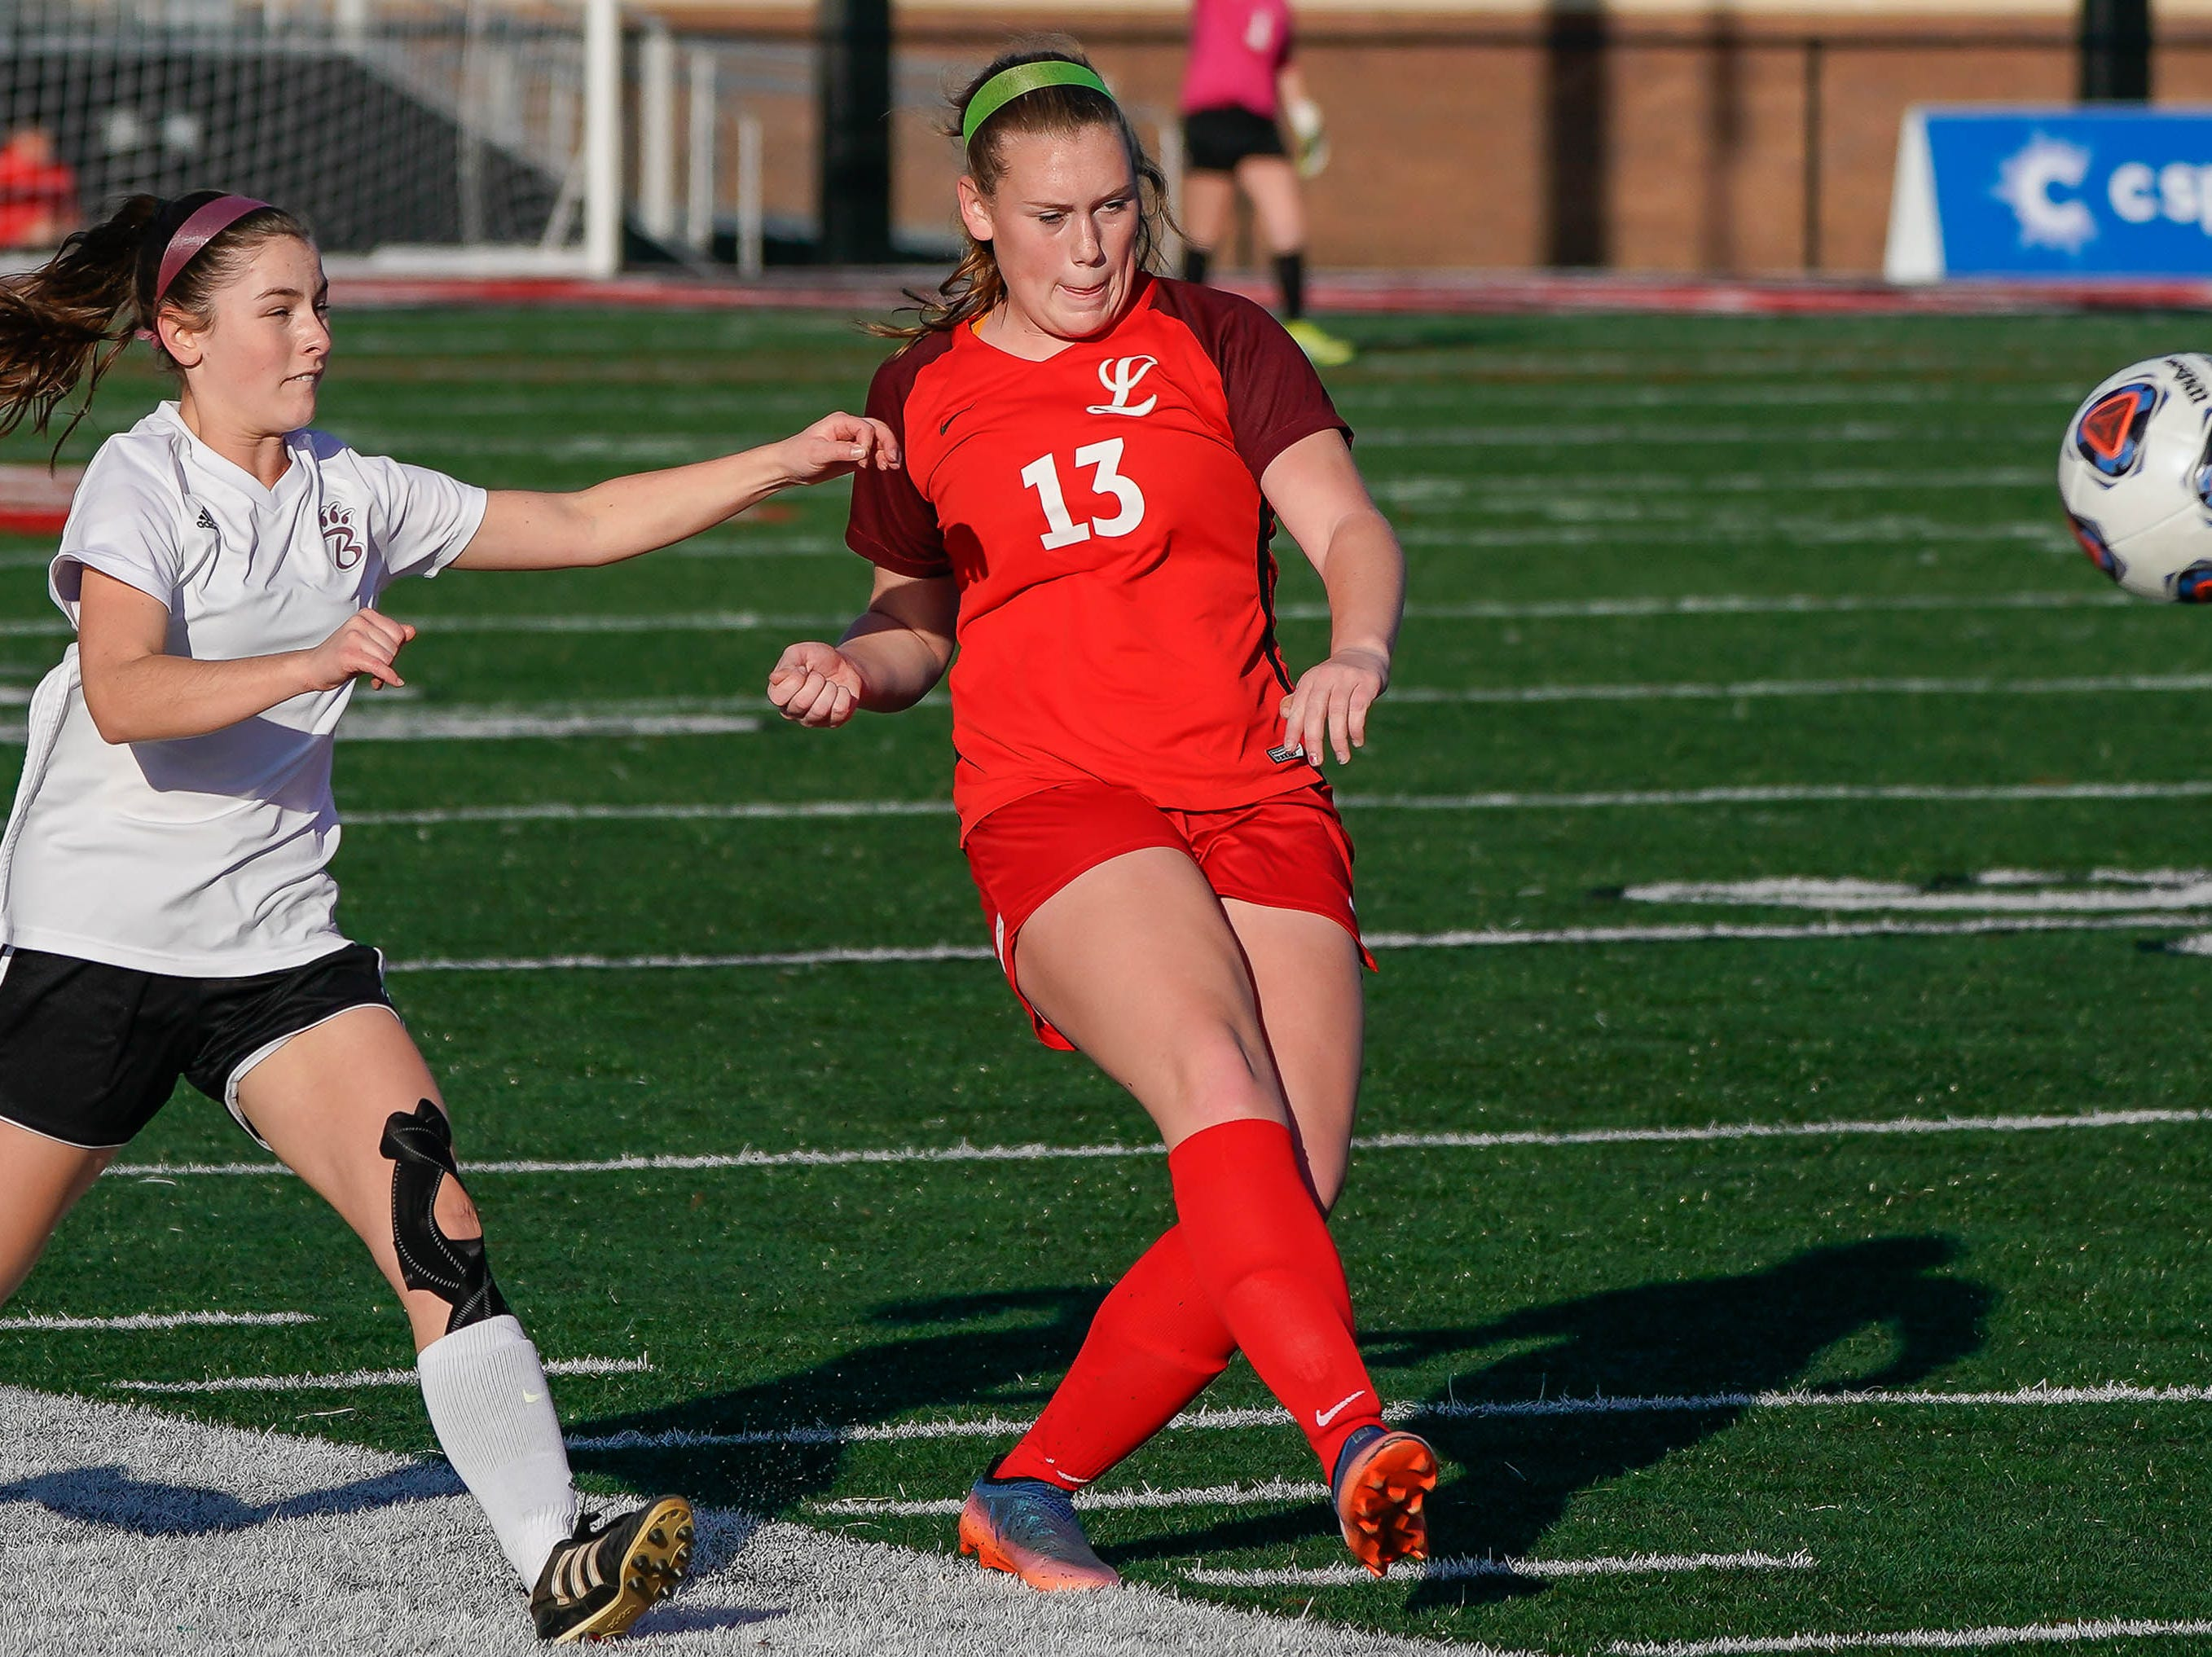 Lafayette's Sara Moore (13) kicks a ball against Long Beach during the MHSAA 5A Girls Soccer Championships held at Brandon High School in Brandon, MS, Saturday February 9, 2019.(Bob Smith-For The Clarion Ledger)